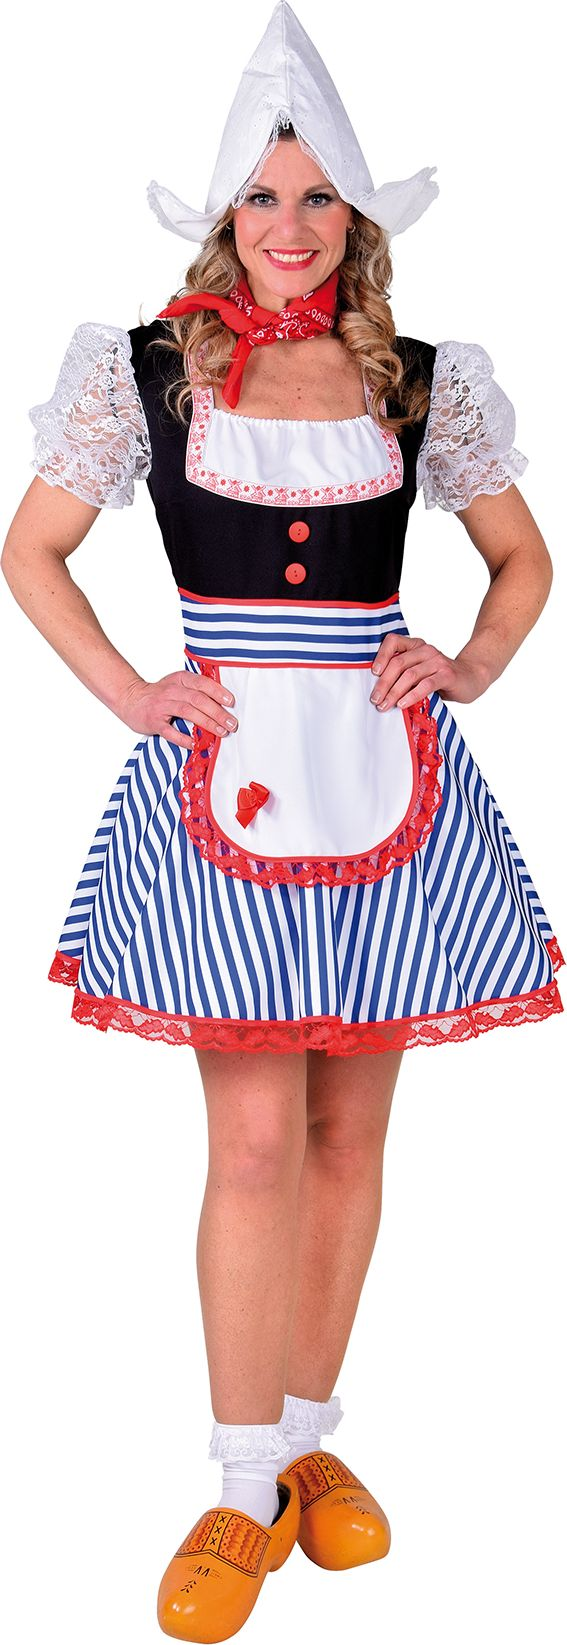 Oud Hollandse carnavals outfit vrouwen